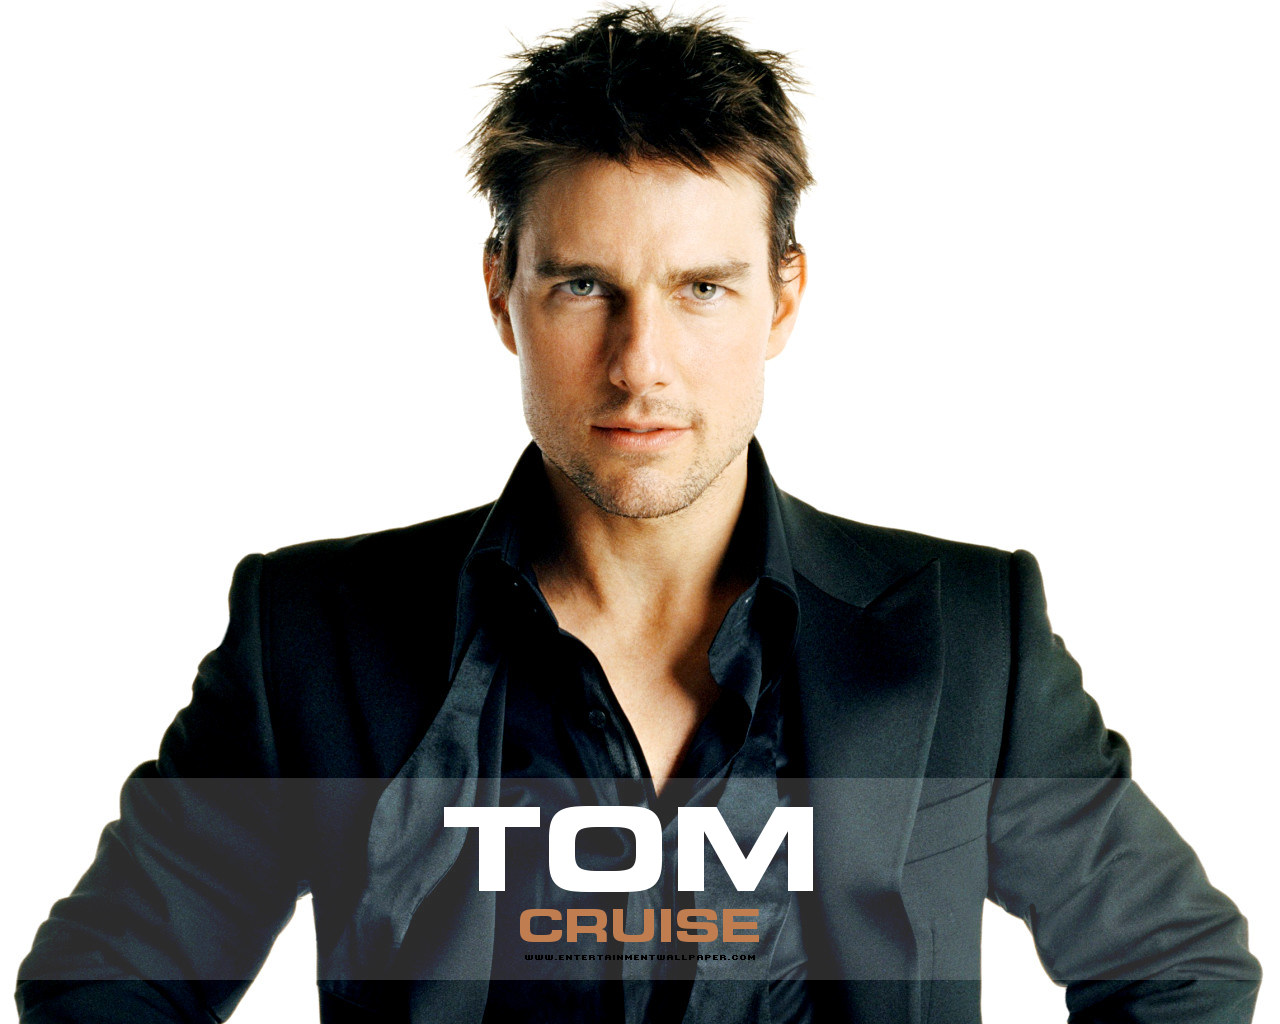 http://4.bp.blogspot.com/-mA5Tix6rcUg/T7deV7yqCxI/AAAAAAAABSU/h8ZOyl7bxuQ/s1600/Tom+Cruise+HD+Wallpapers+%2814%29.jpg